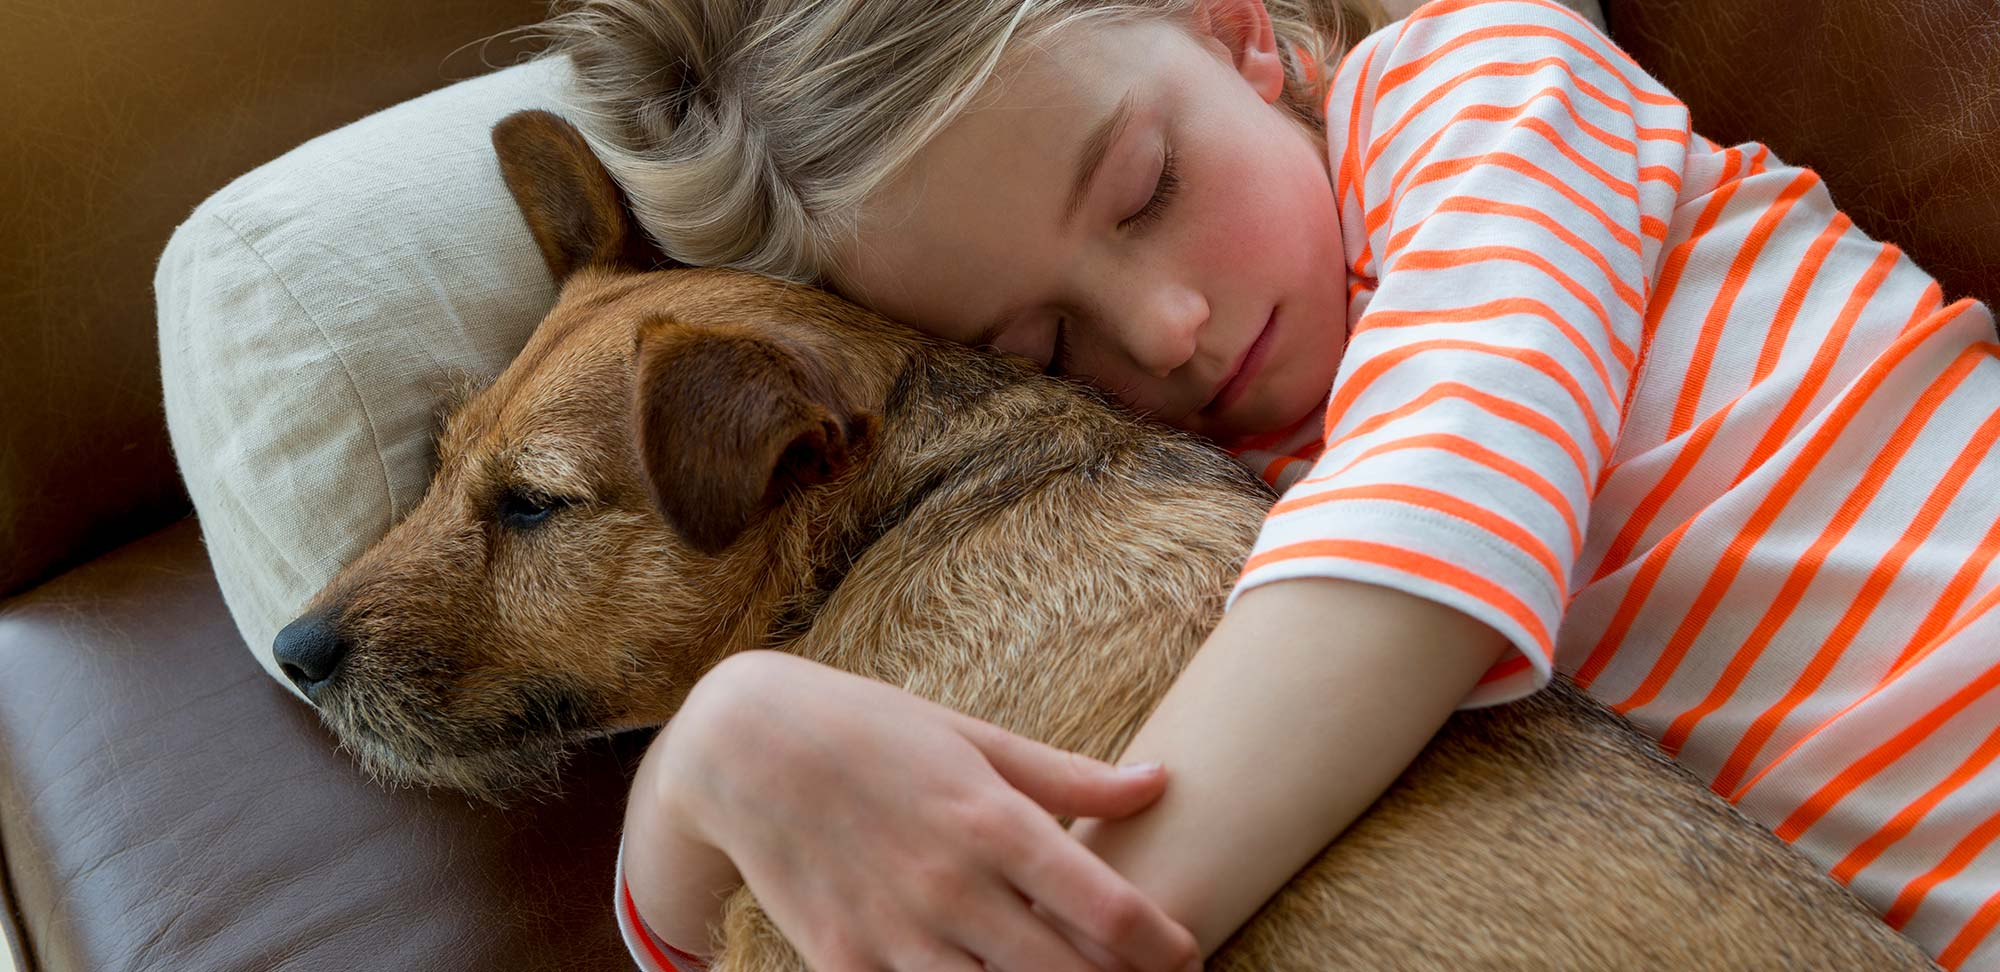 Top reasons to adopt a pet   The Humane Society of the United States